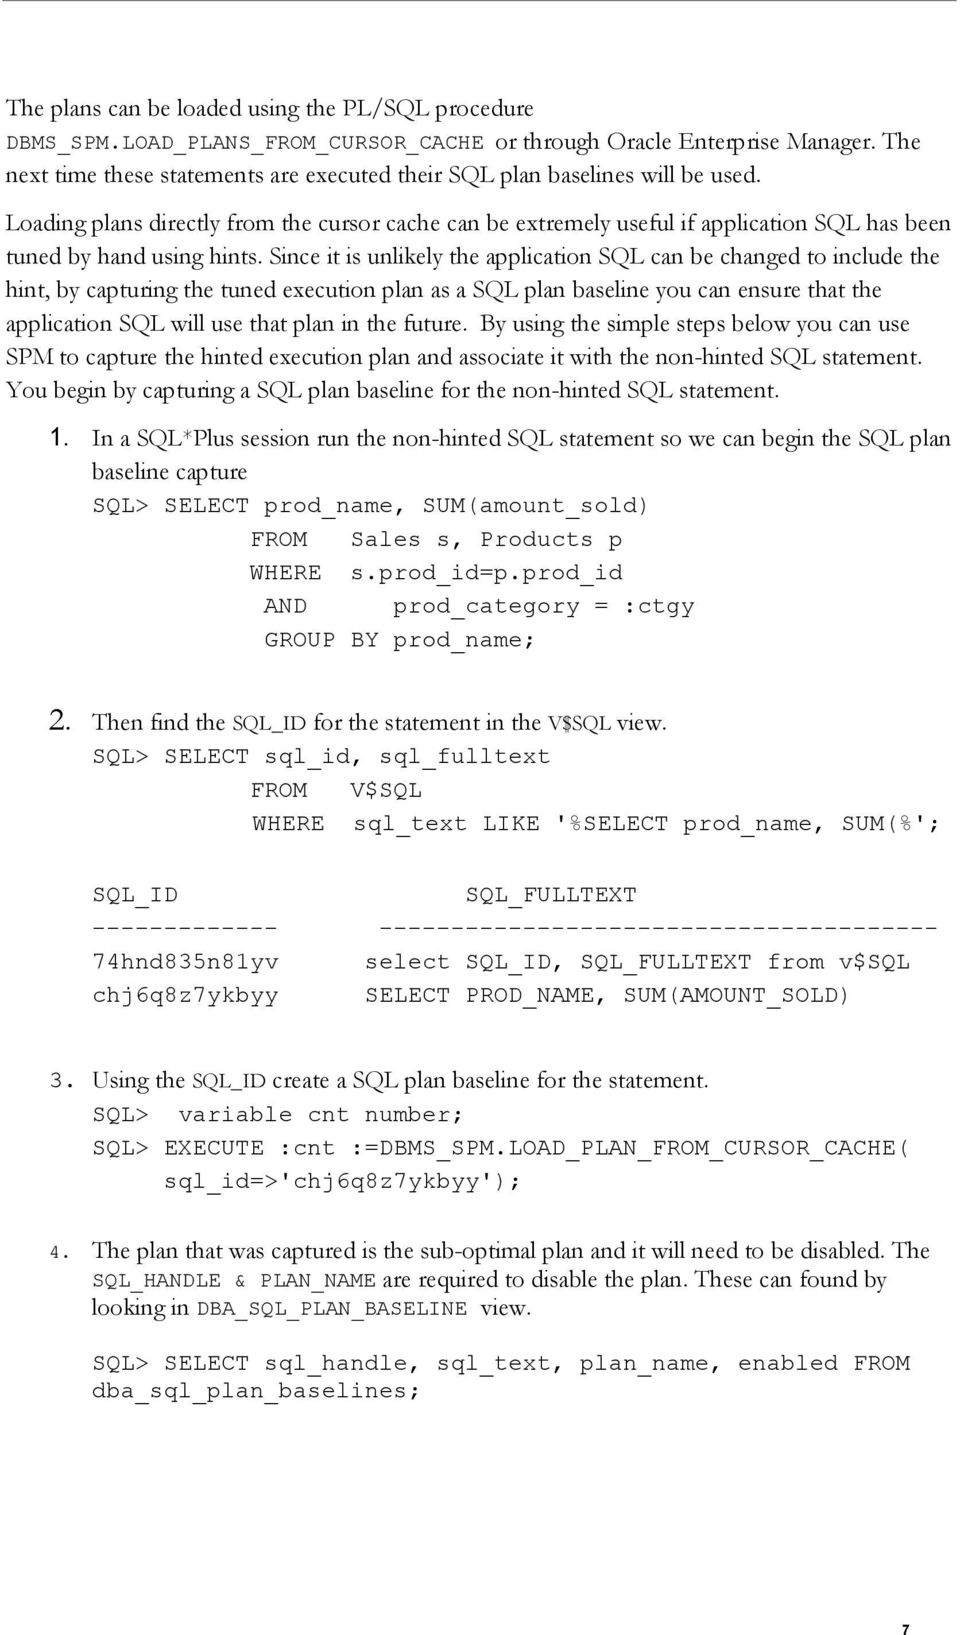 Loading plans directly from the cursor cache can be extremely useful if application SQL has been tuned by hand using hints.